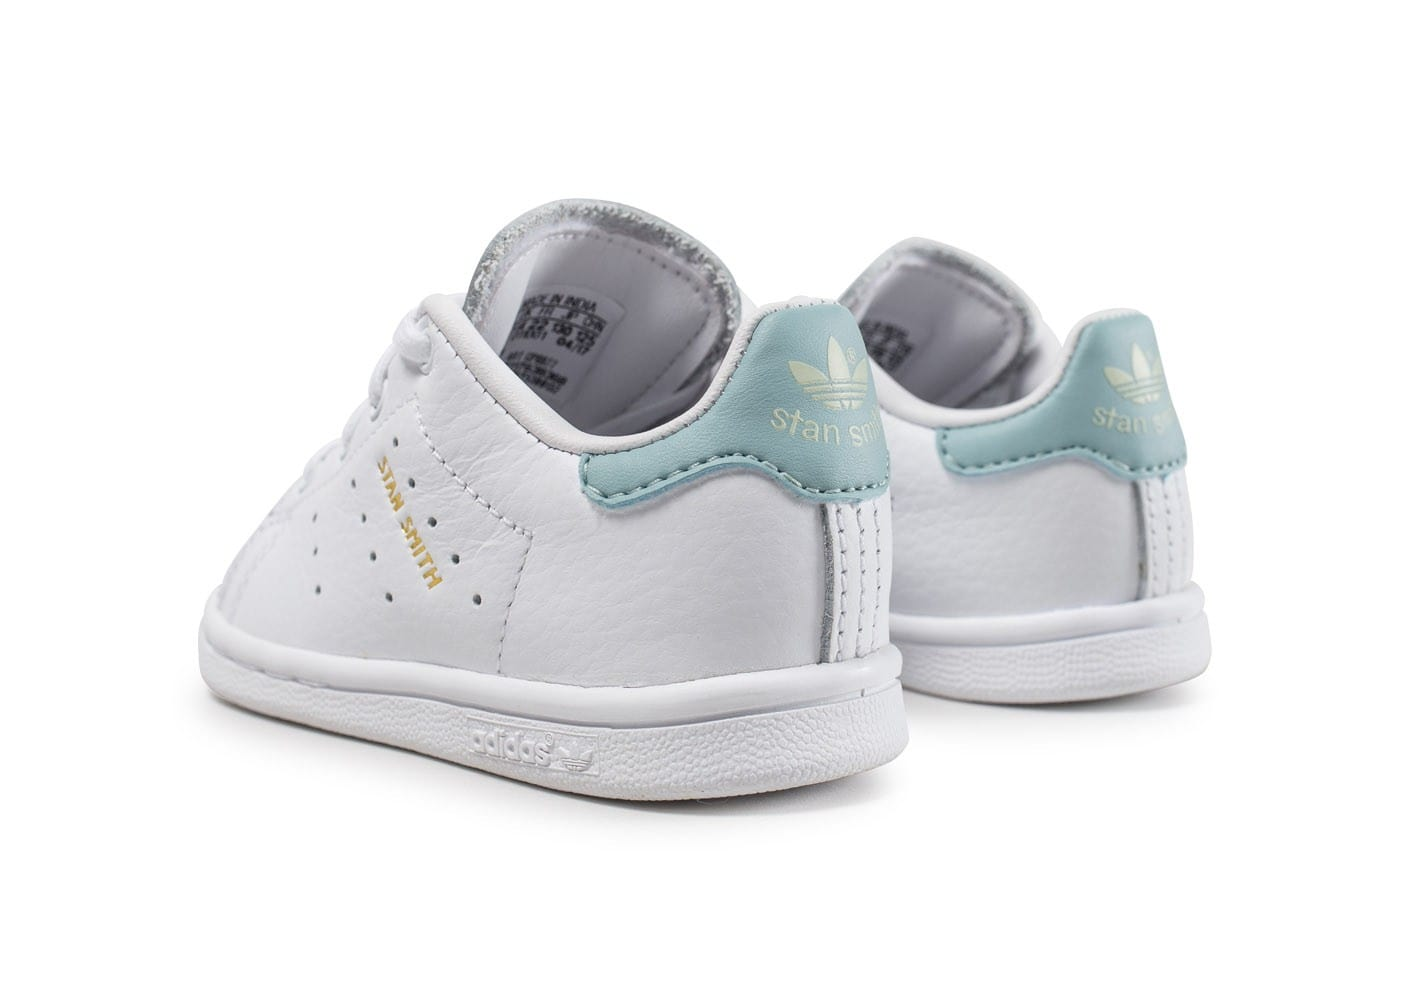 adidas stan smith b b blanche et bleue turquoise chaussures adidas chausport. Black Bedroom Furniture Sets. Home Design Ideas